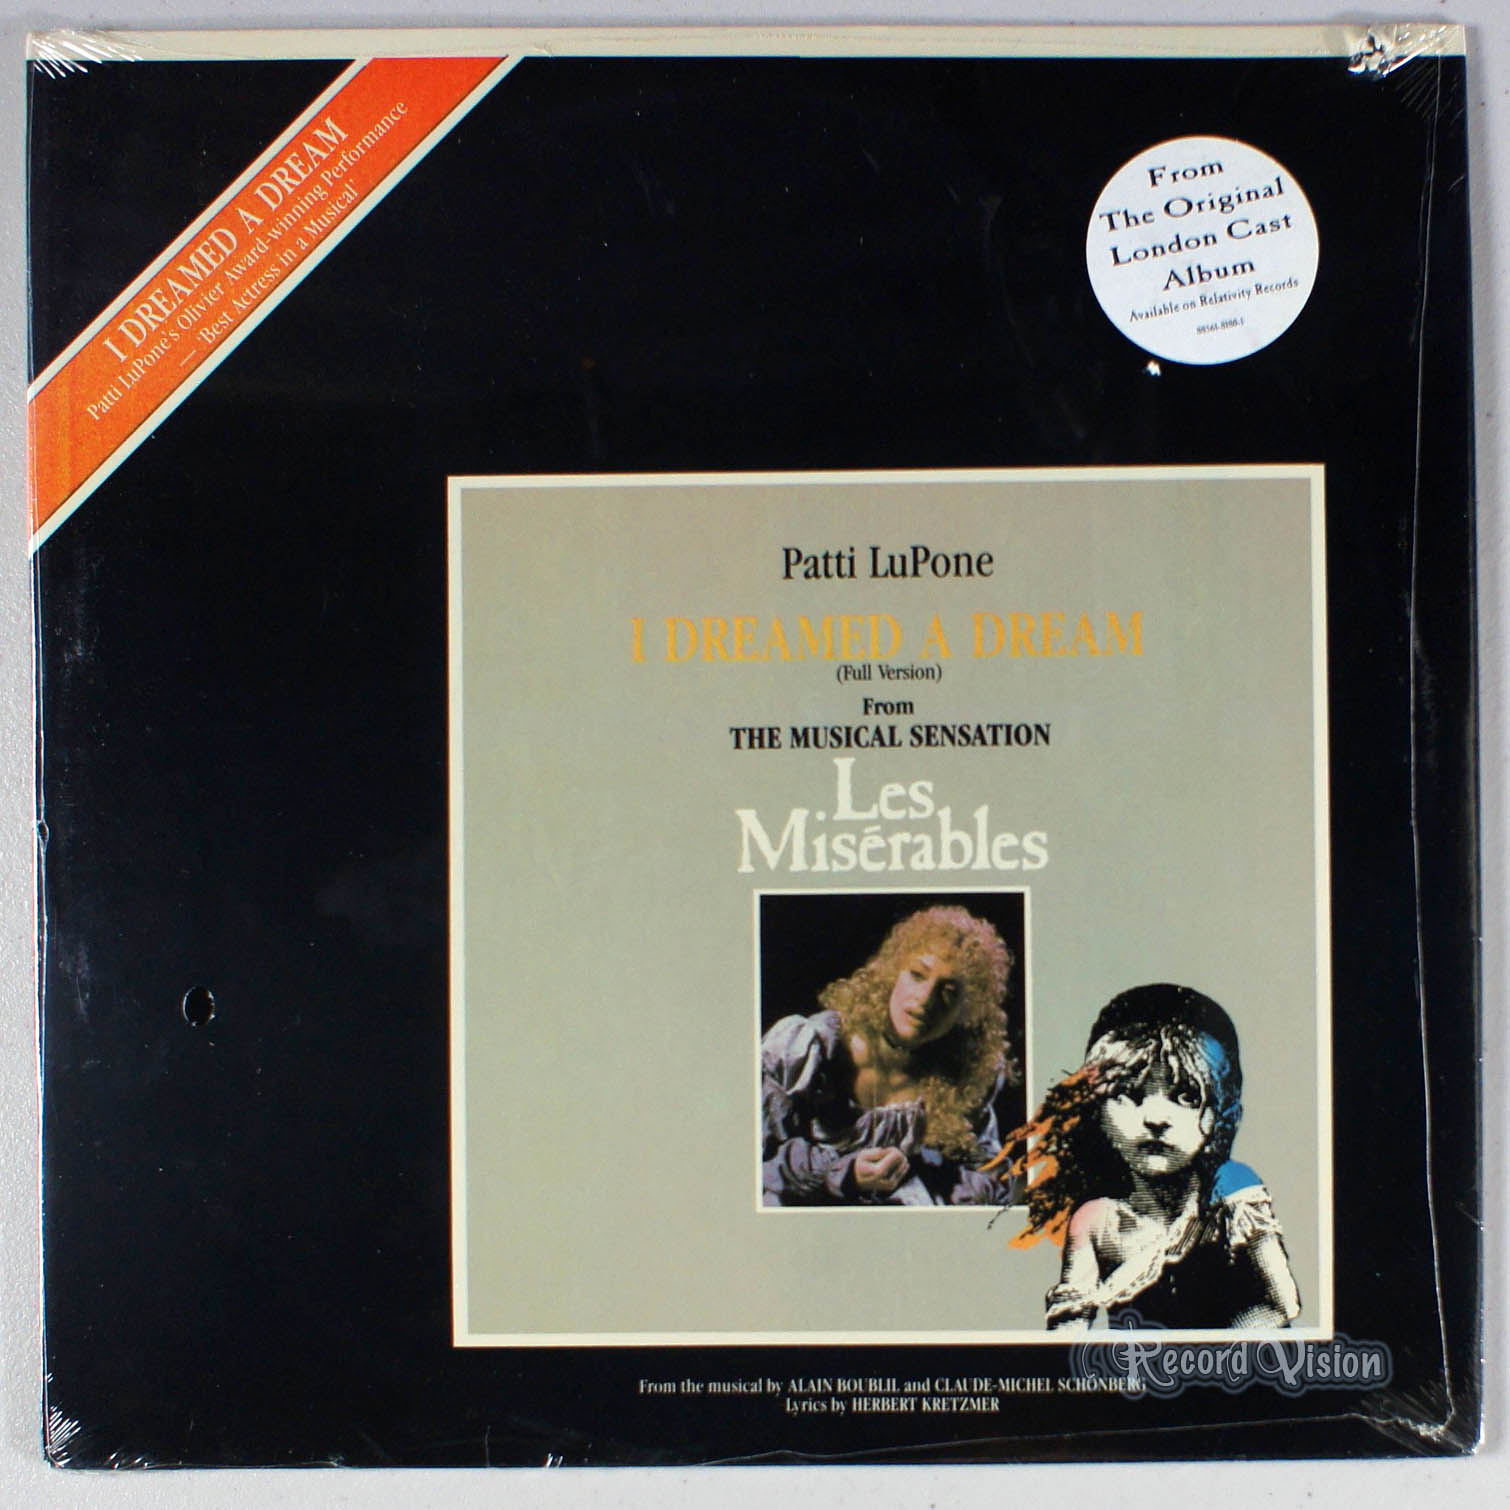 PATTI LUPONE - I Dreamed a Dream - 12 inch x 1